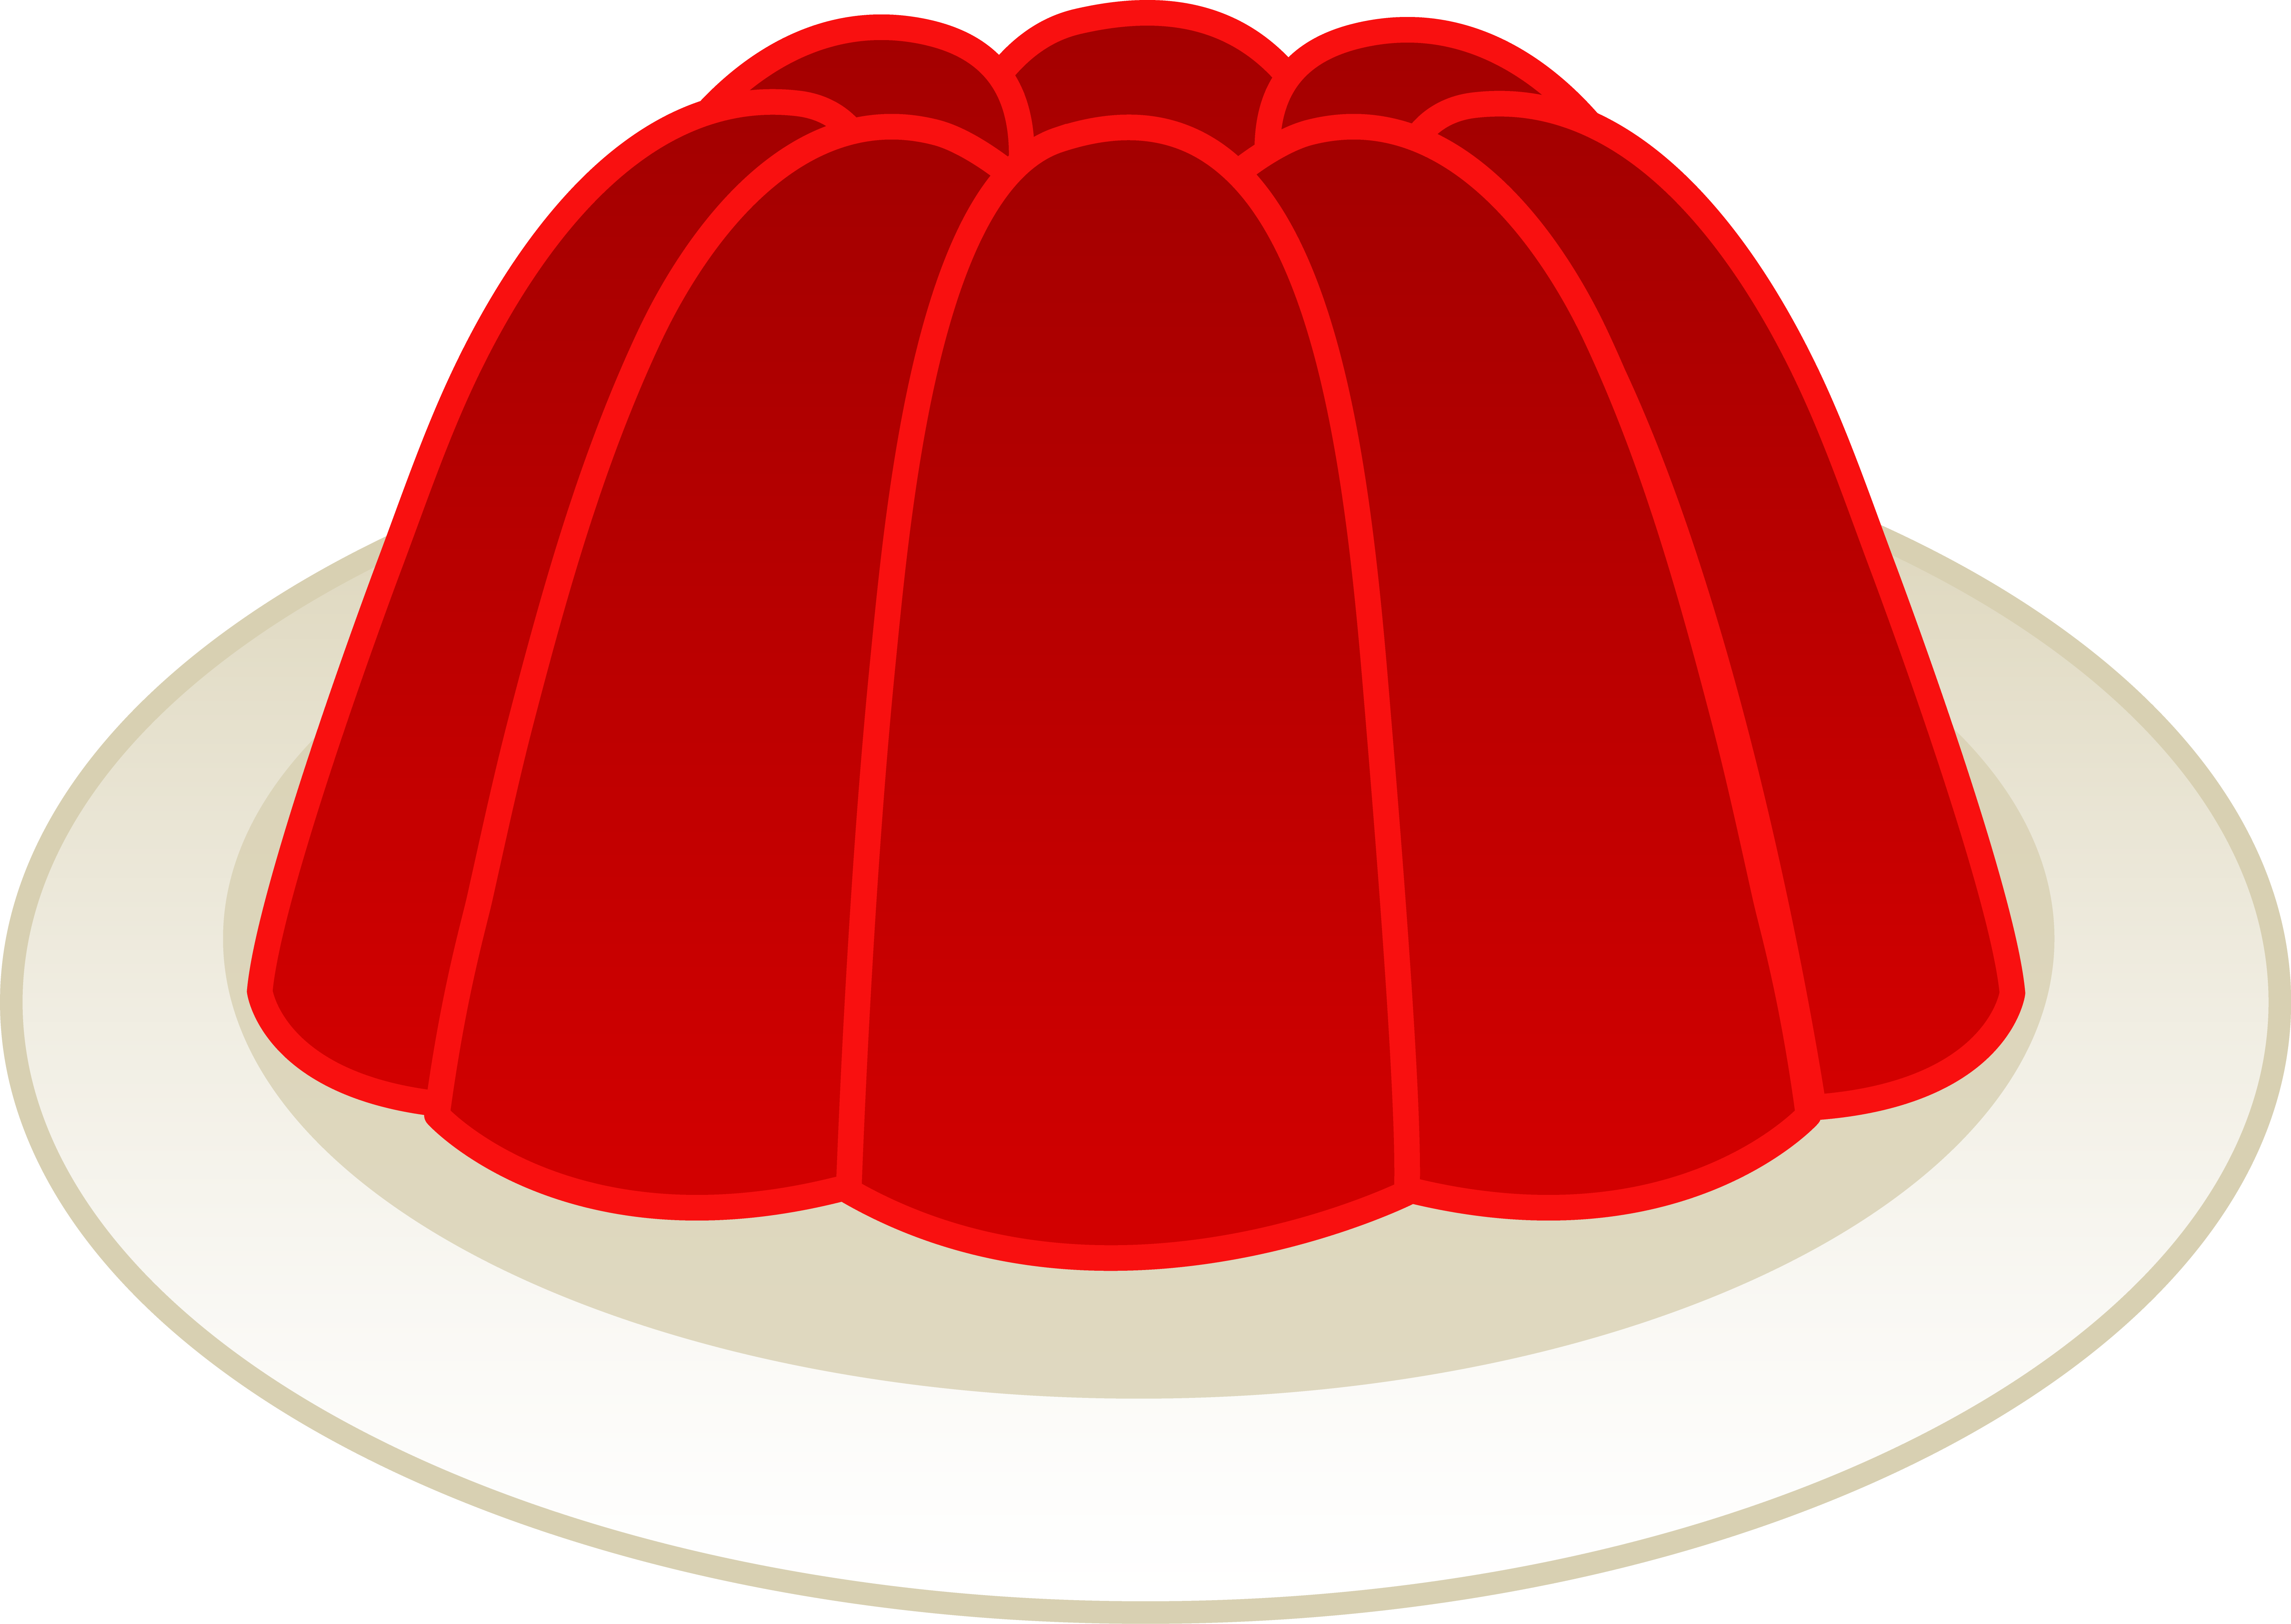 Free clipart jelly.